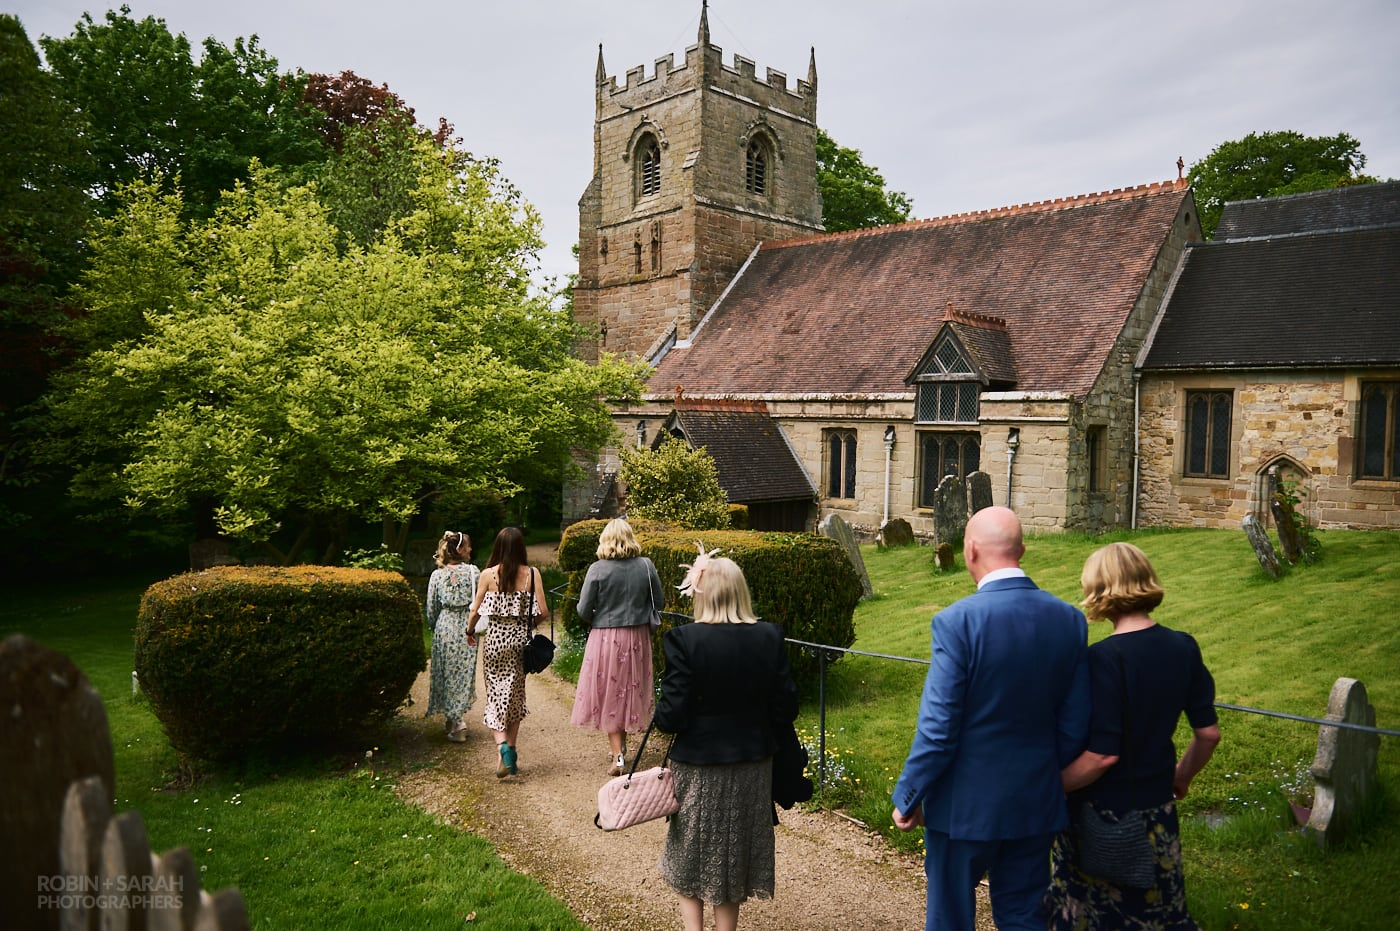 Wedding guests arrive at Beoley church for wedding